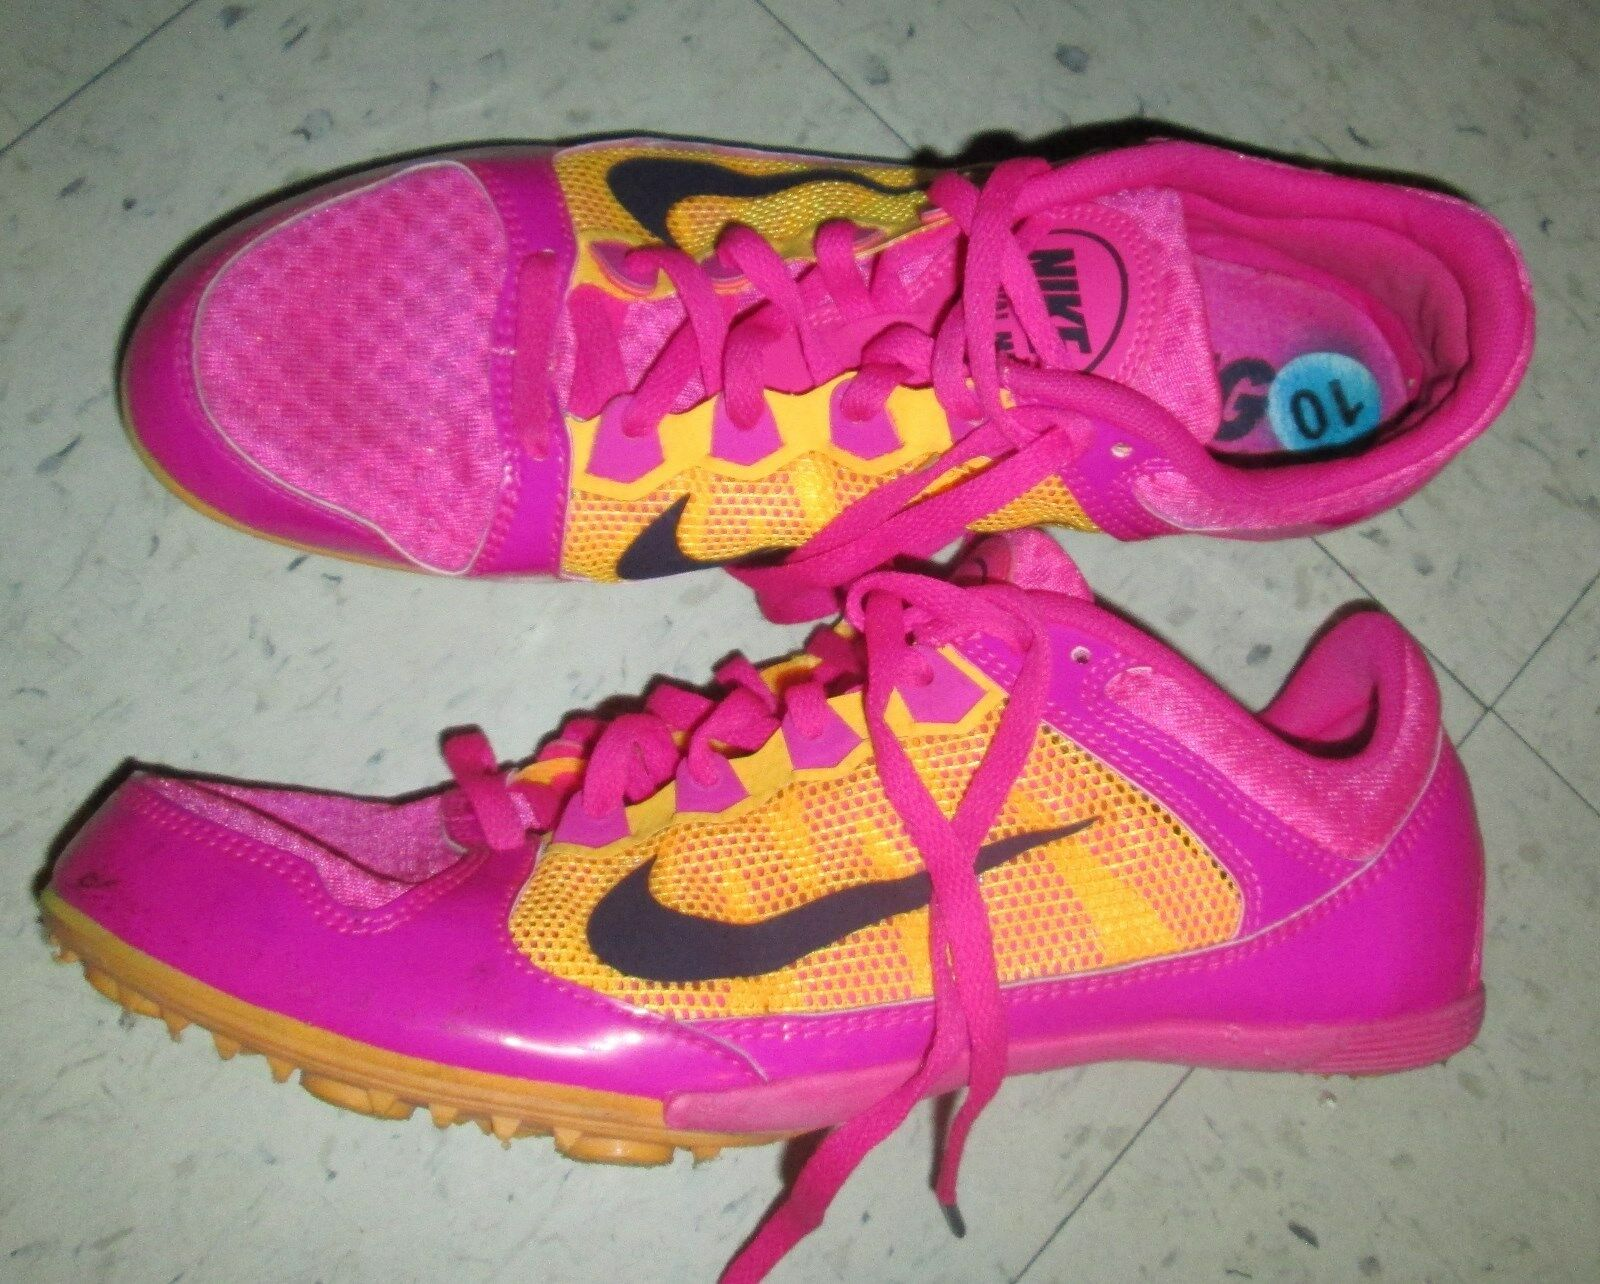 Nike Zoom Rival MD7 Mid Distance Track Running 615982-660 Womens 10 NO SPIKES Cheap women's shoes women's shoes